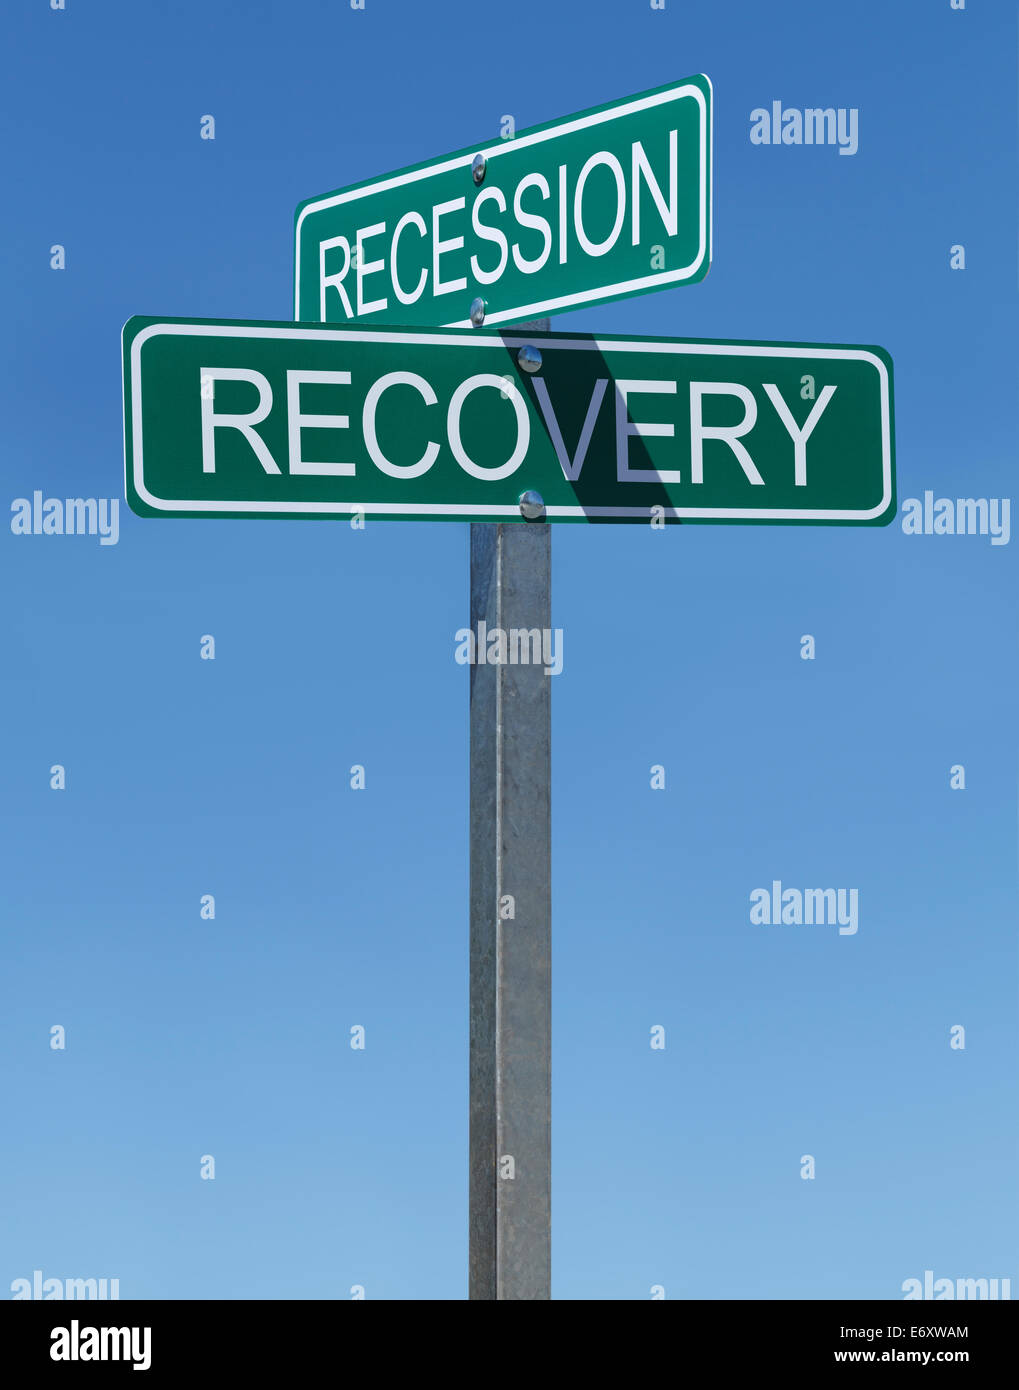 Two Green Street Signs Recession and Recovery on Metal Pole with Blue Sky Background. - Stock Image